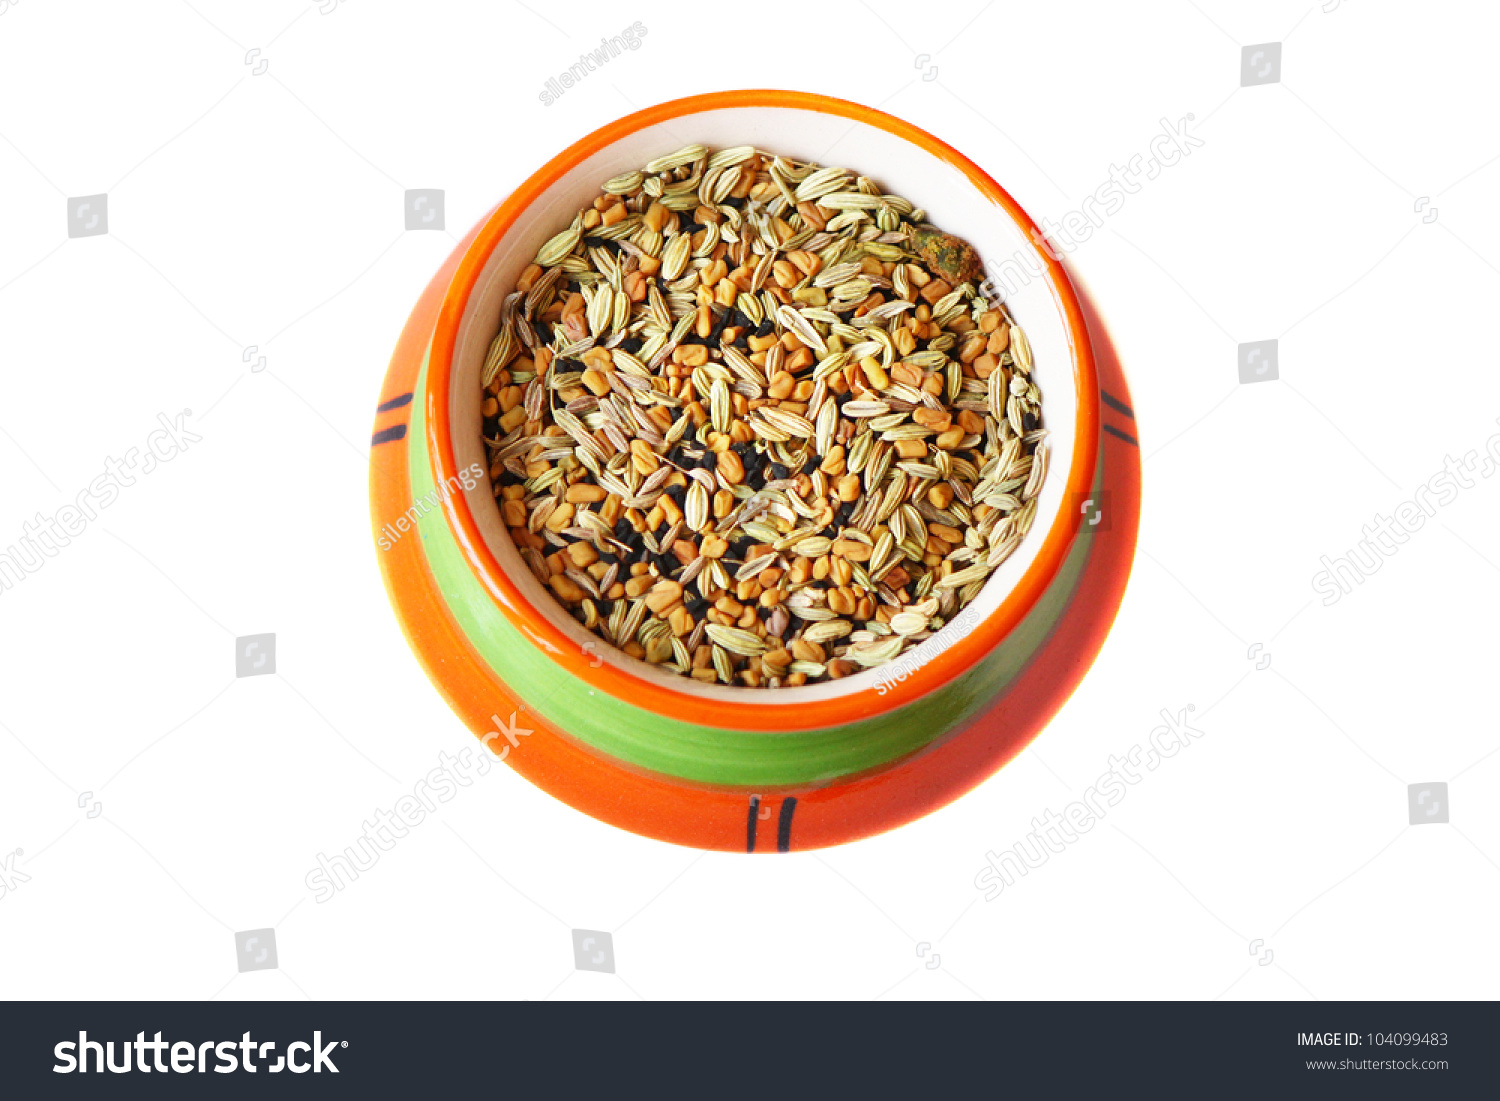 Indian spice pot full of multicolored aromatic spices stock photo 104099483 shutterstock - Aromatic herbs pots multiple benefits ...